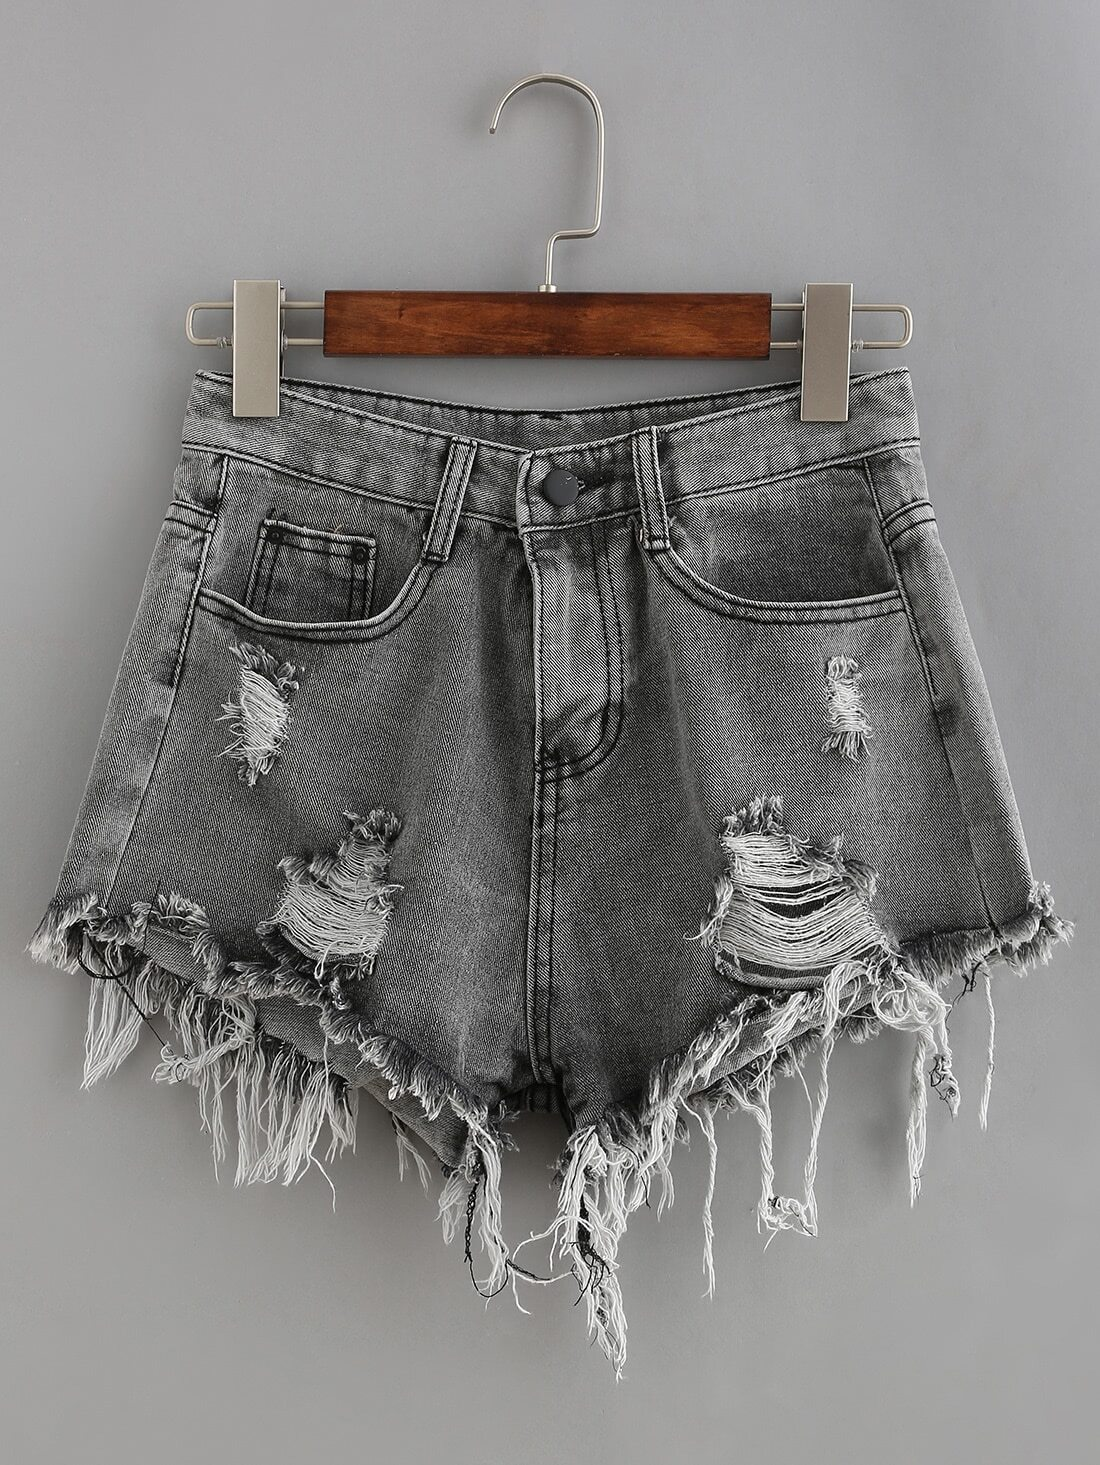 Frayed Grey Denim ShortsFrayed Grey Denim Shorts<br><br>color: Grey<br>size: L,M,S,XL